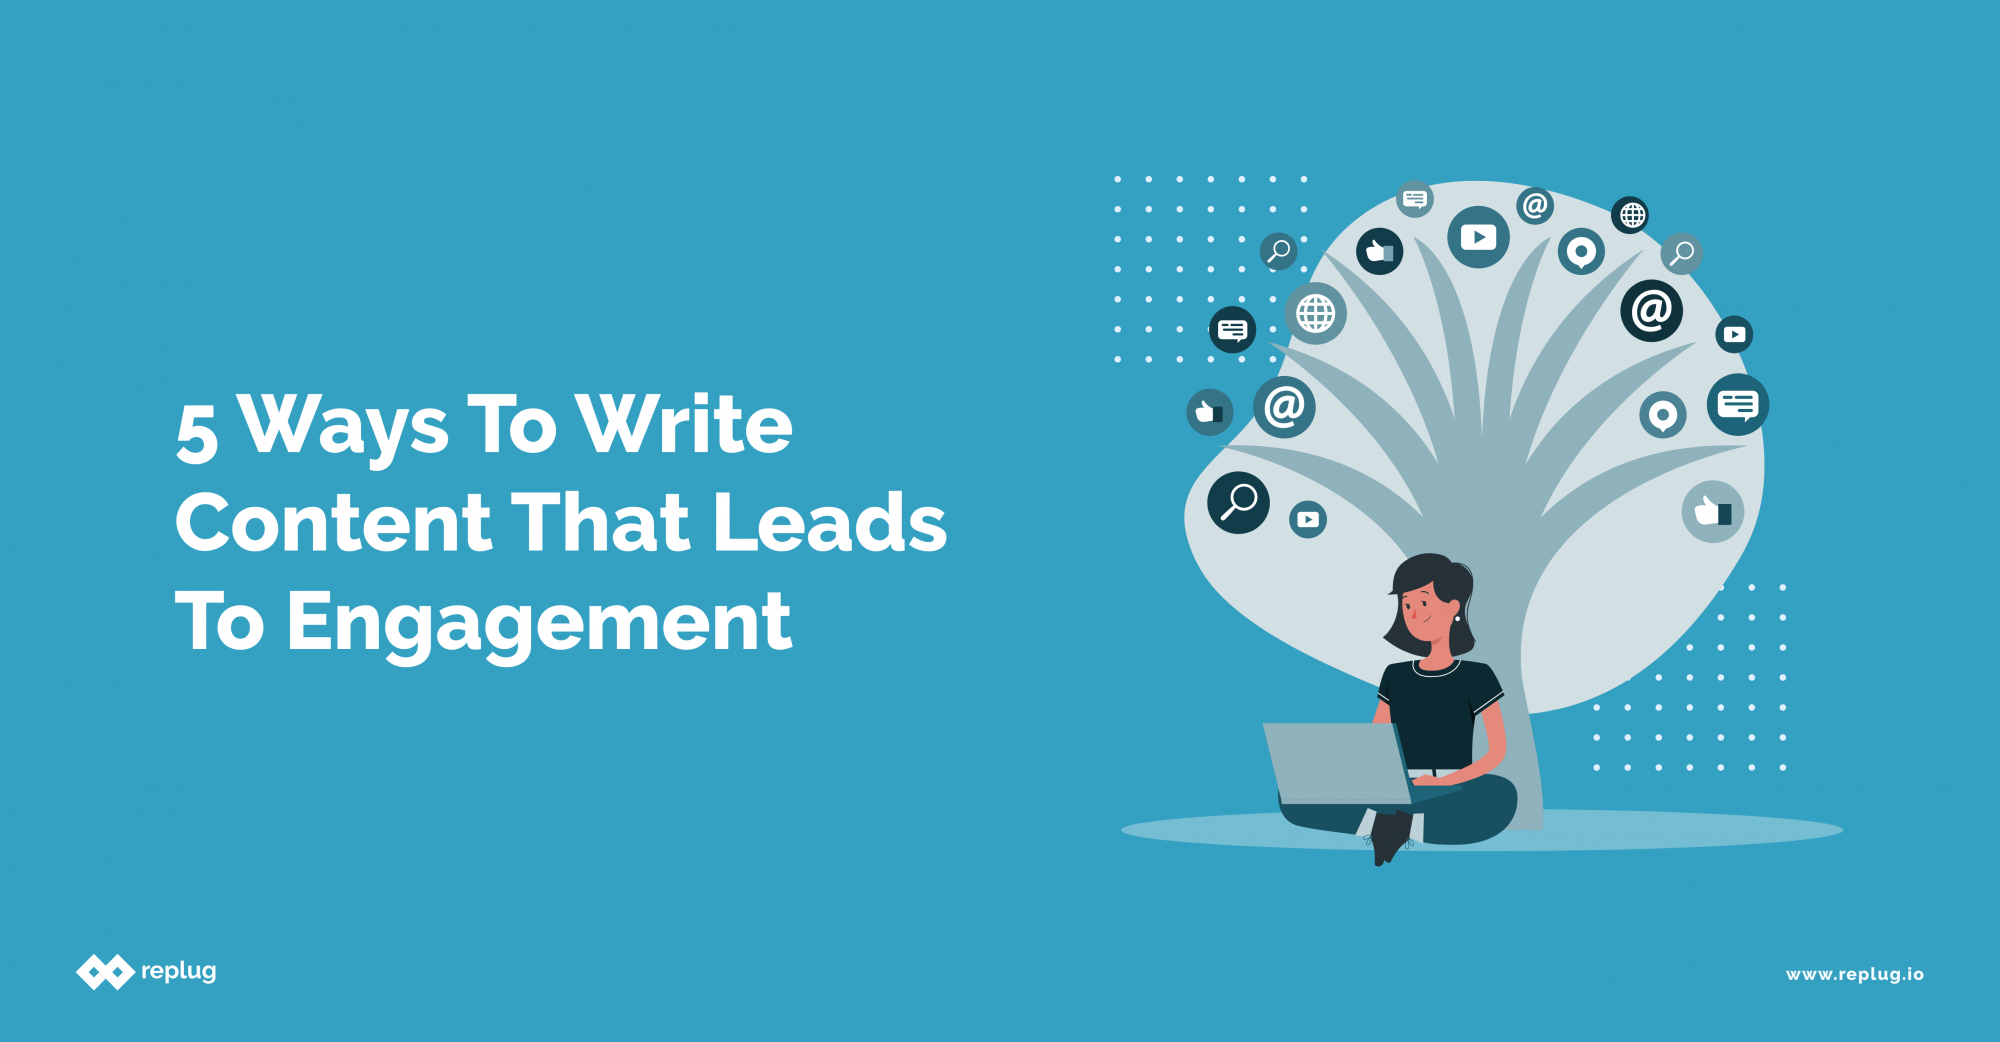 5 Ways to Write Content that Leads to Engagement